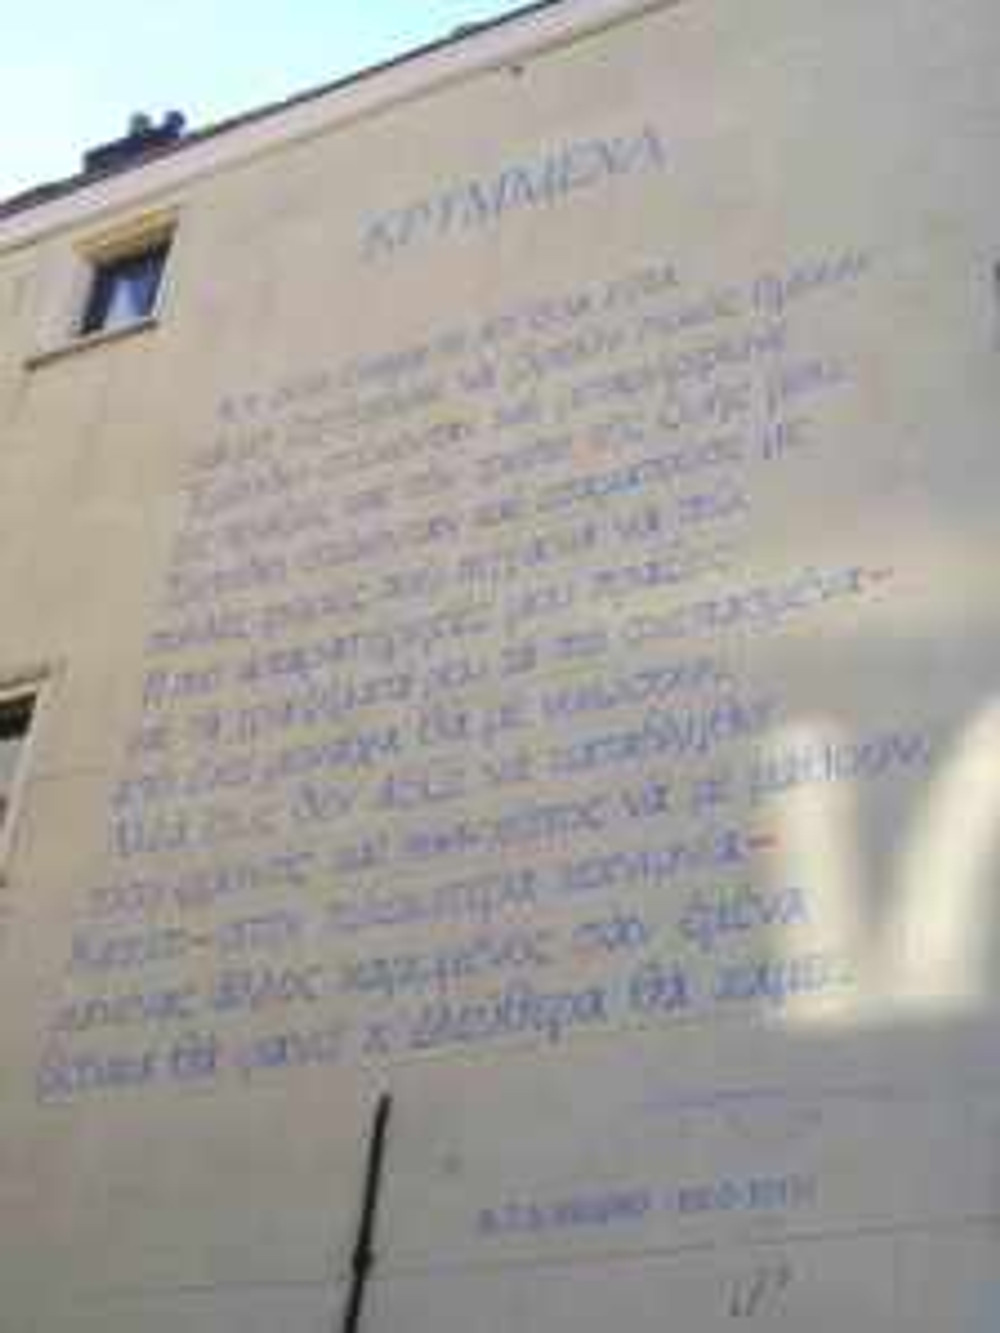 """Cavafy's poem Κρυμμένα (""""Krymmena"""", Hidden Things) painted on a building in Leiden, Netherlands. Image Wikimedia Commons."""